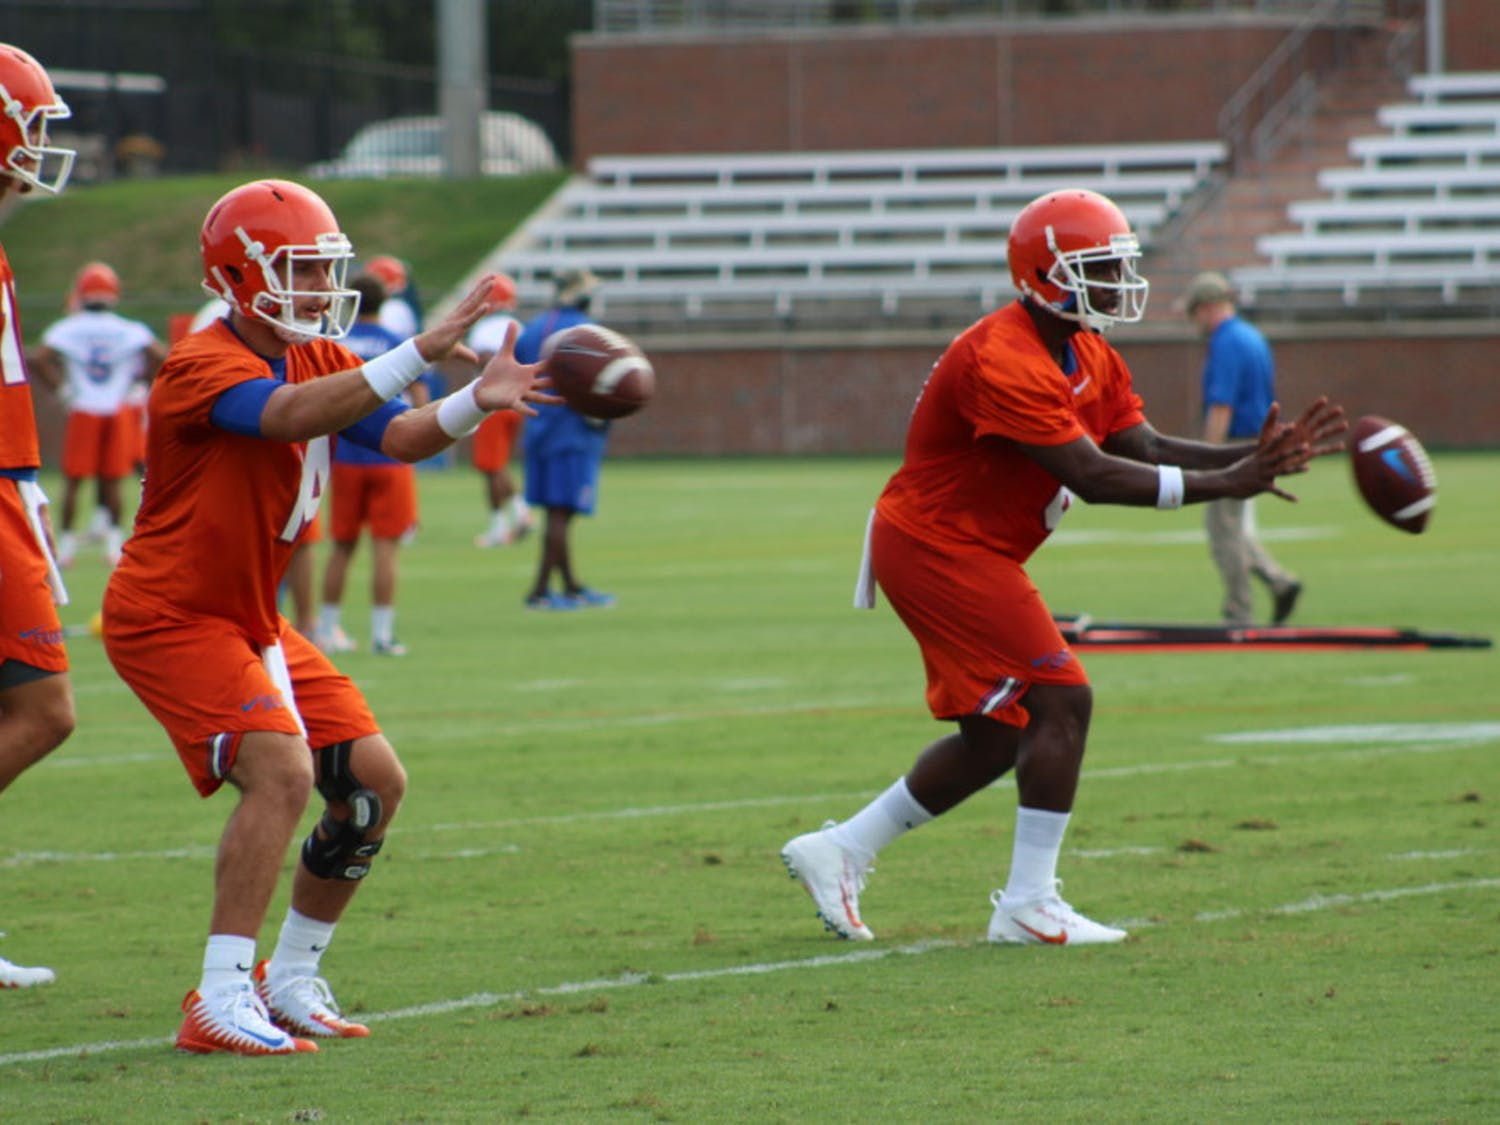 Coach Jim McElwain has yet to make clear which of his top three QBs — Luke Del Rio (left), Malik Zaire (right) and Feleipe Franks — will start.